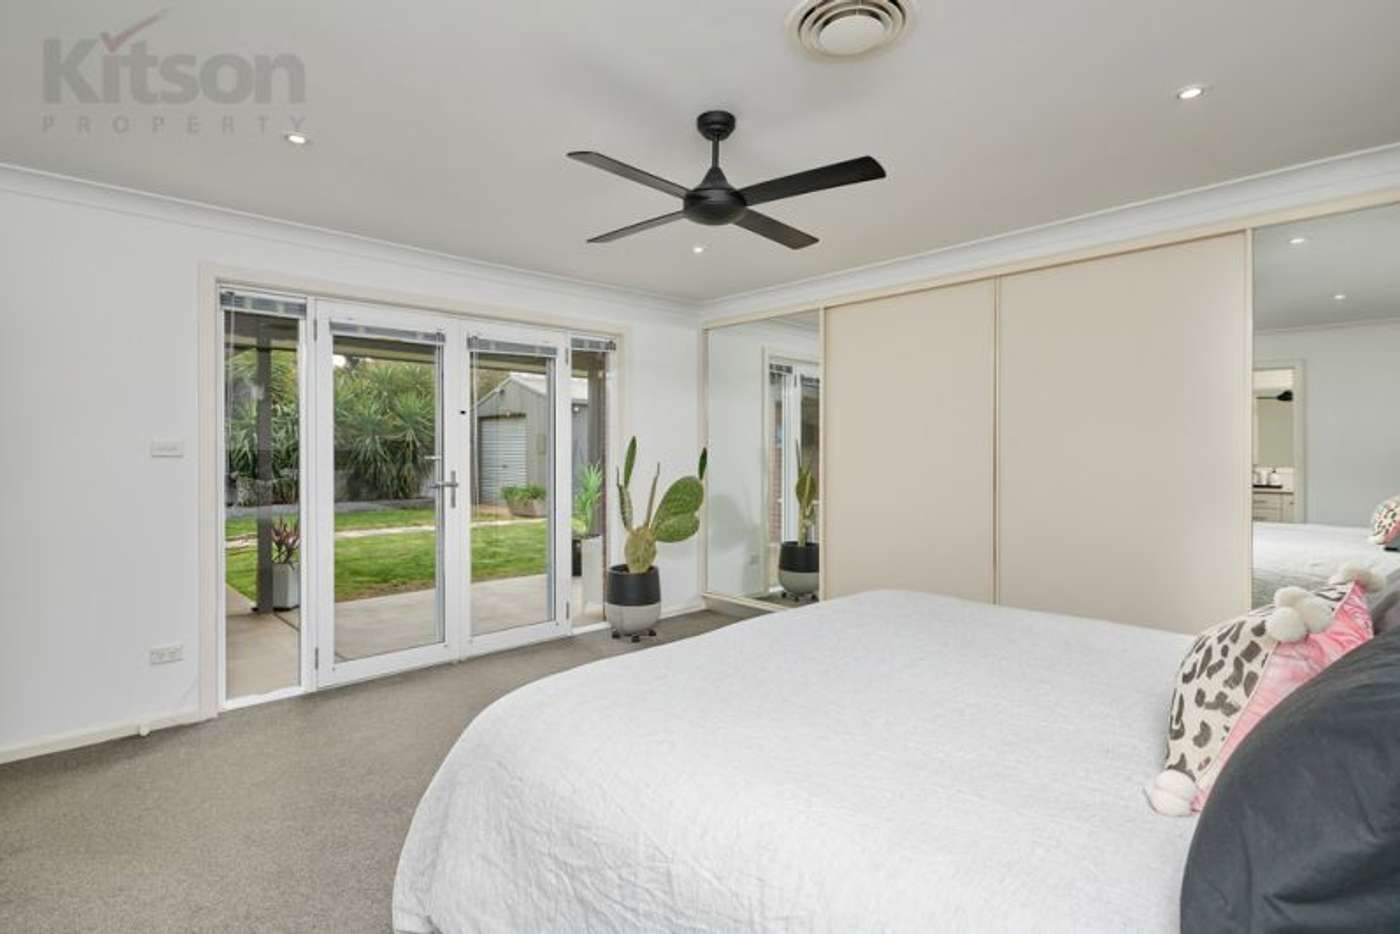 Seventh view of Homely house listing, 19 Wiradjuri Crescent, Wagga Wagga NSW 2650